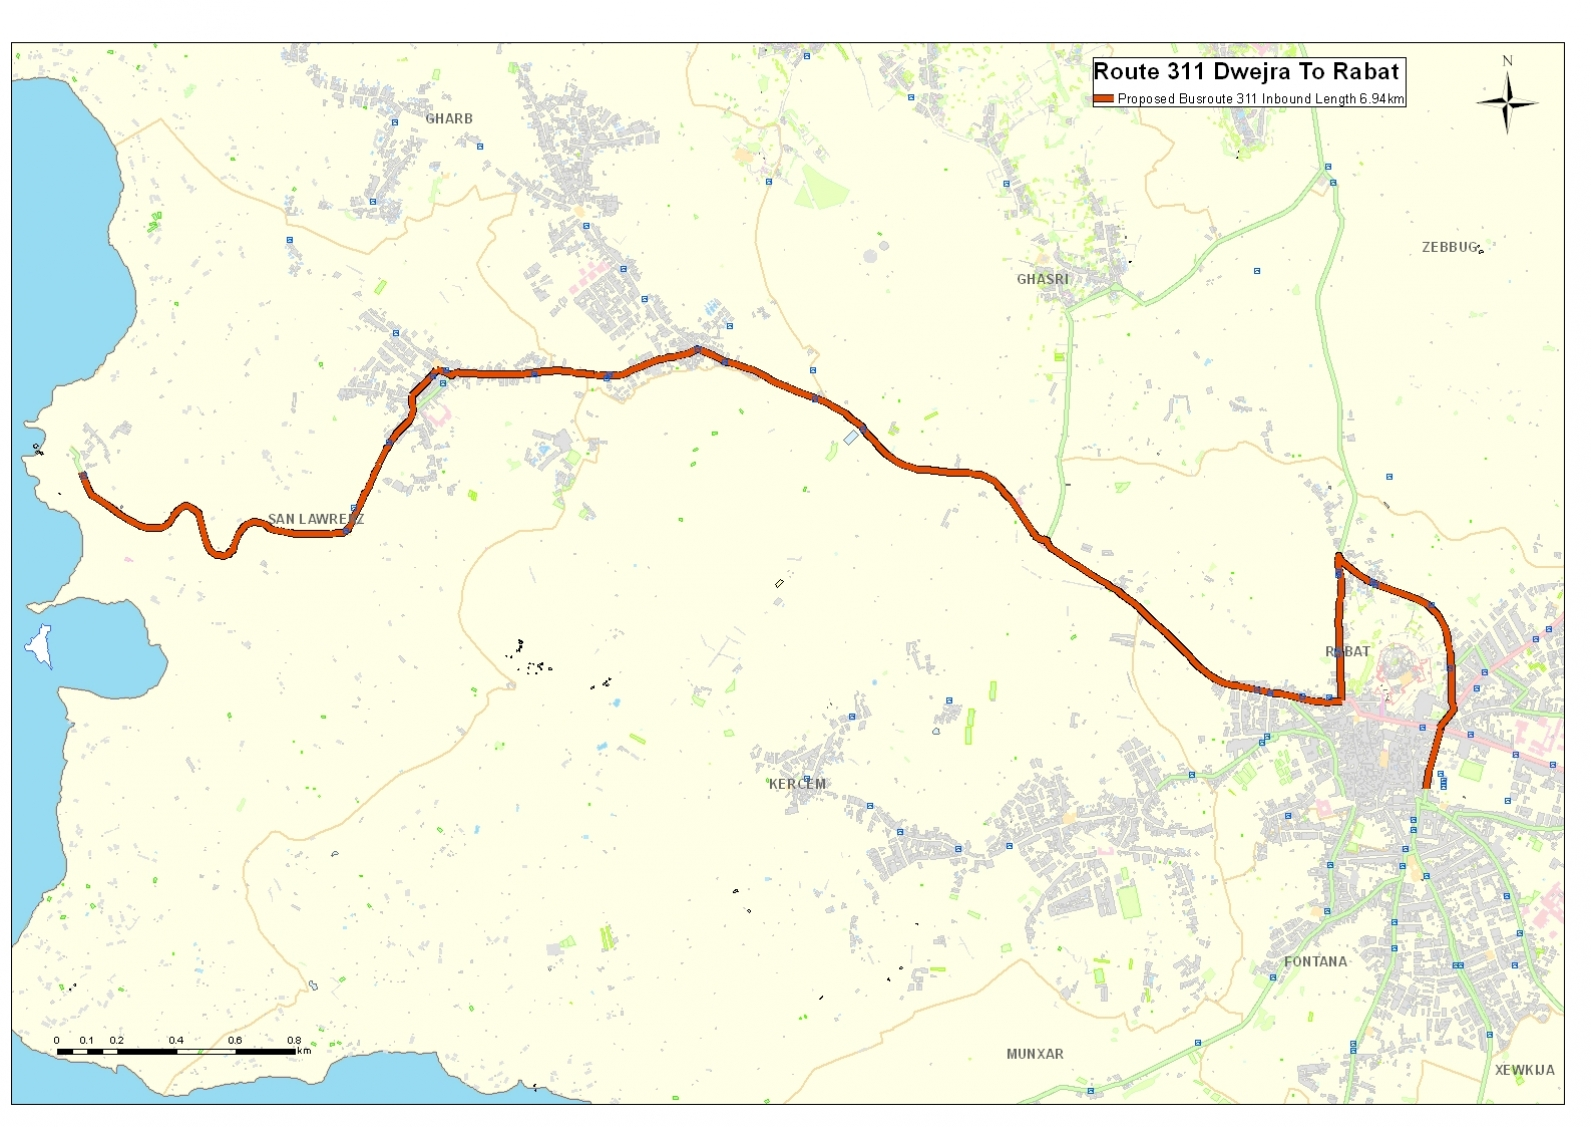 Land-current-network-routes-and-schedules-Gozo-21